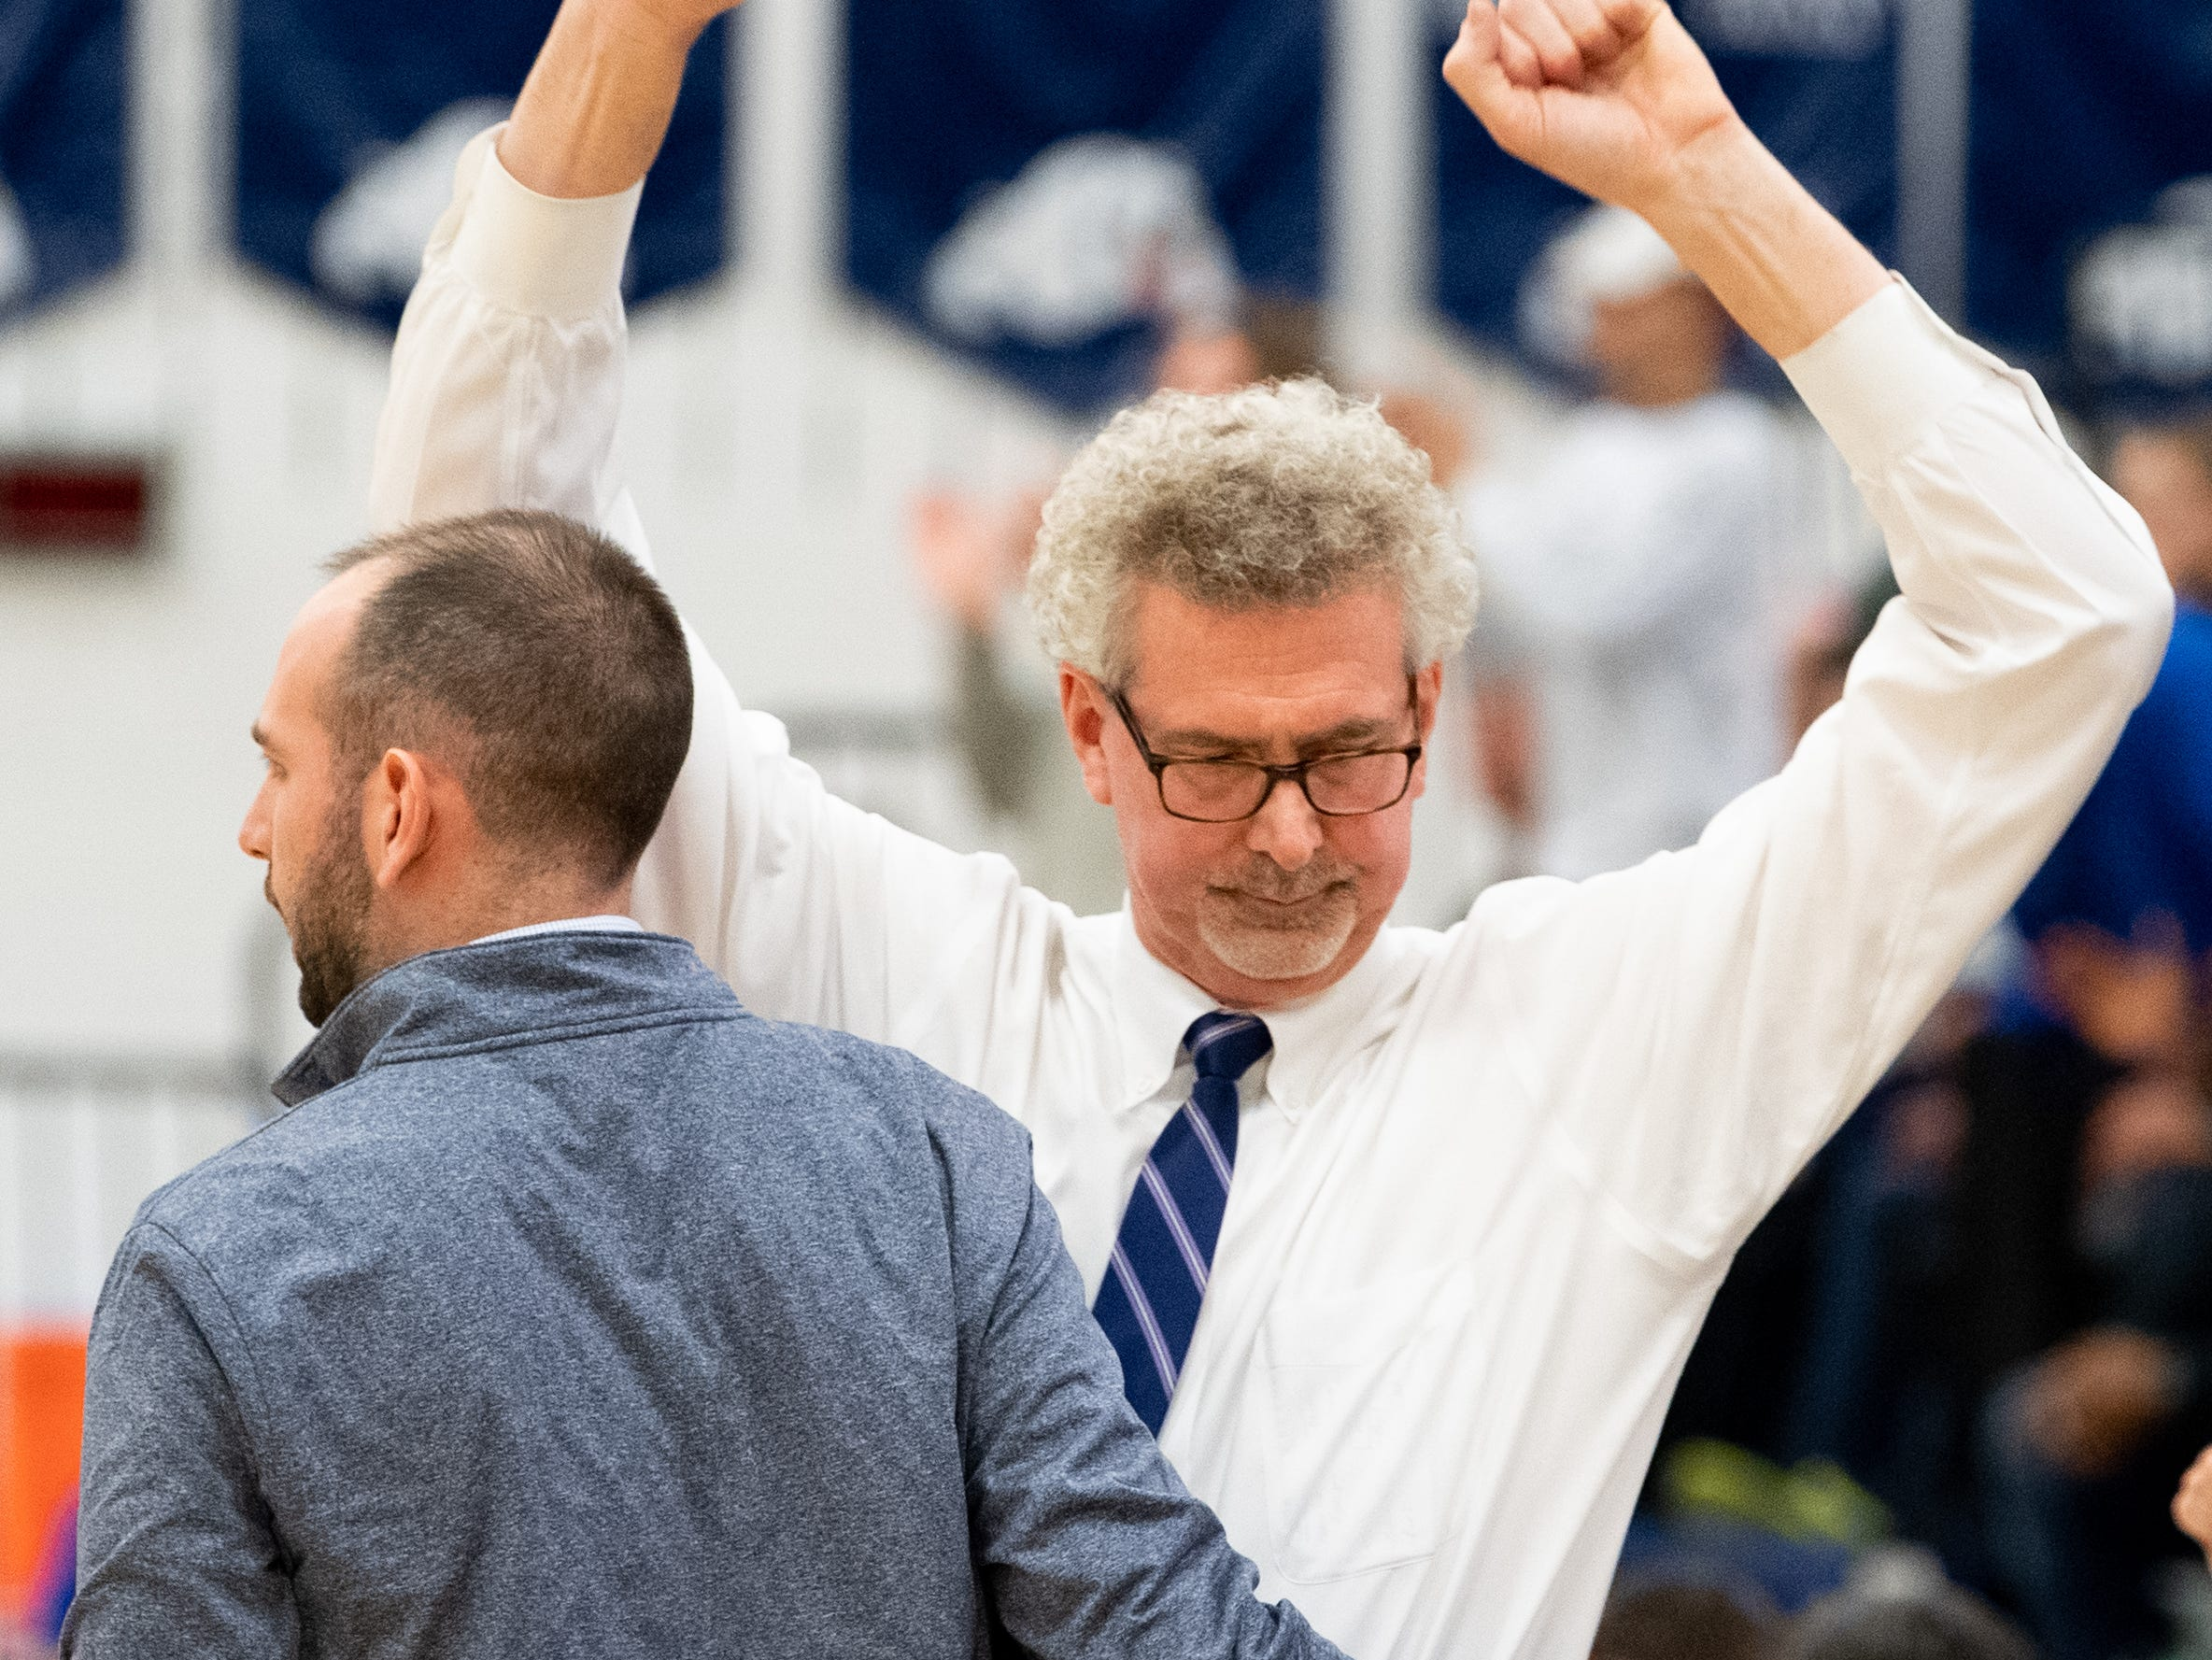 Dallastown head coach Jay Rexroth can hardly contain his excitement after his team defeated Downingtown East in the PIAA first round girls' basketball game, Friday, March 8, 2019 at West York Area High School. The Wildcats beat the Cougars 43 to 39.